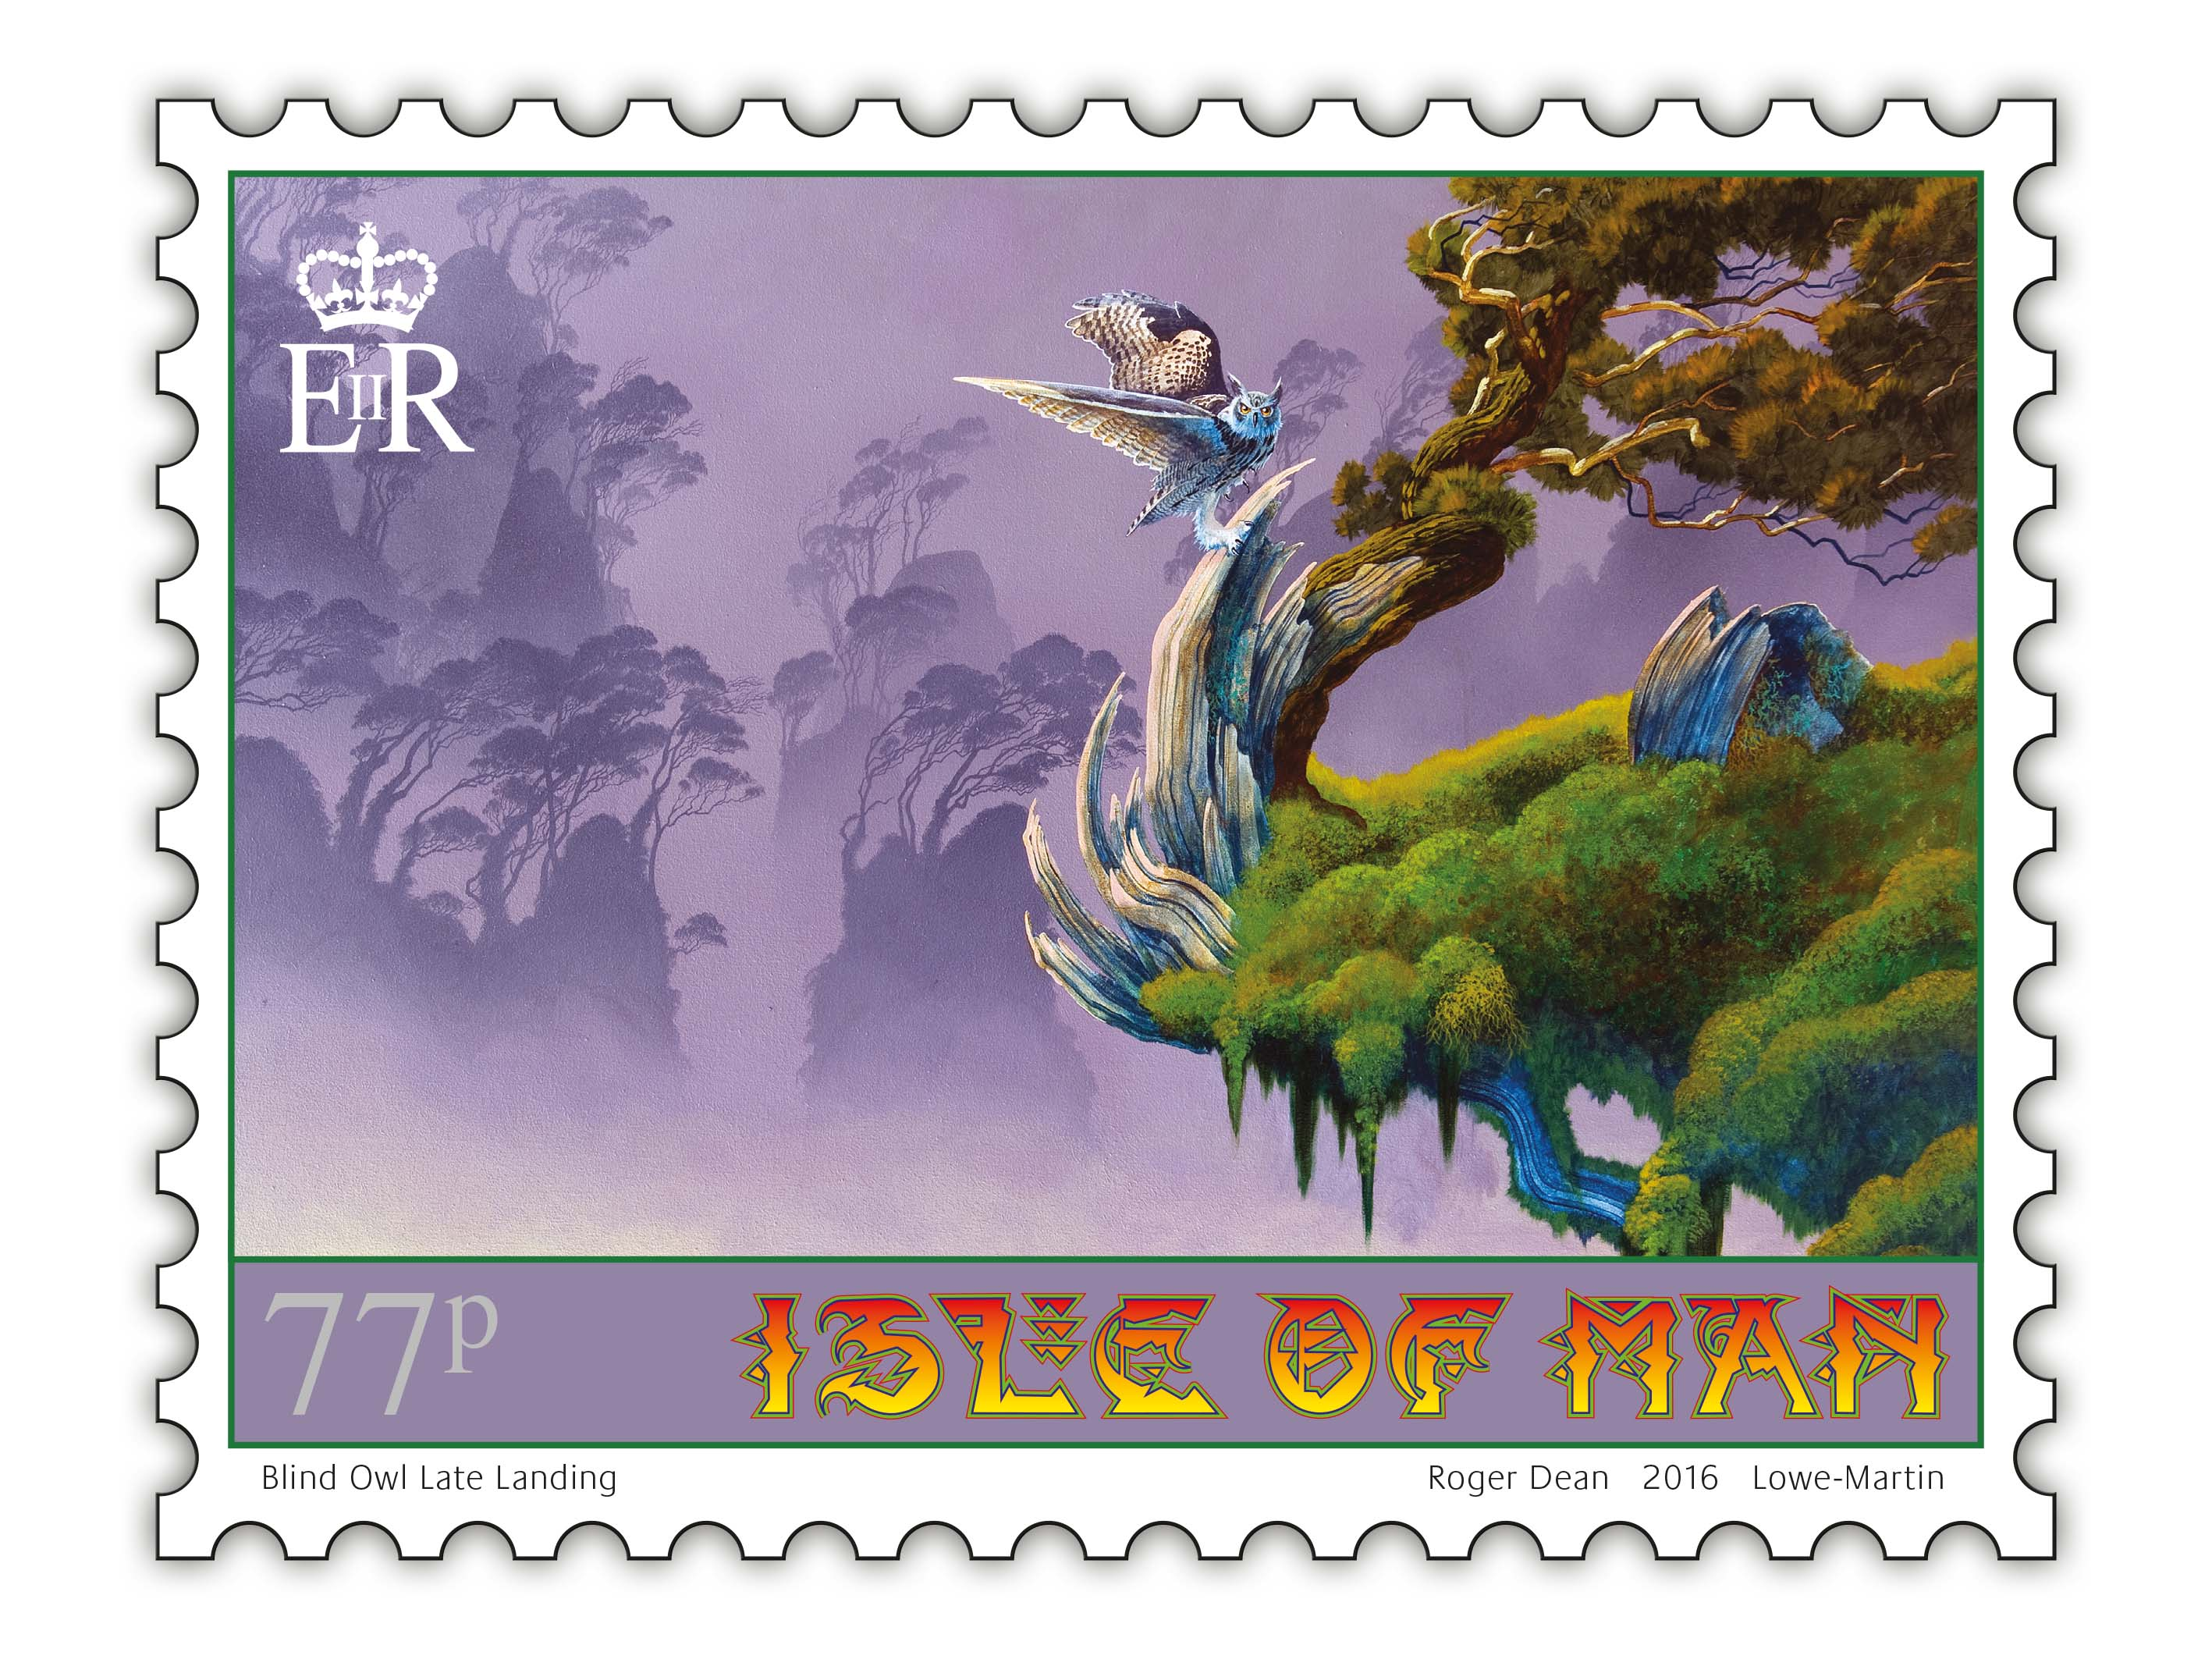 Oh yes roger dean designs stamps for isle of man post for Post office design your own stamps